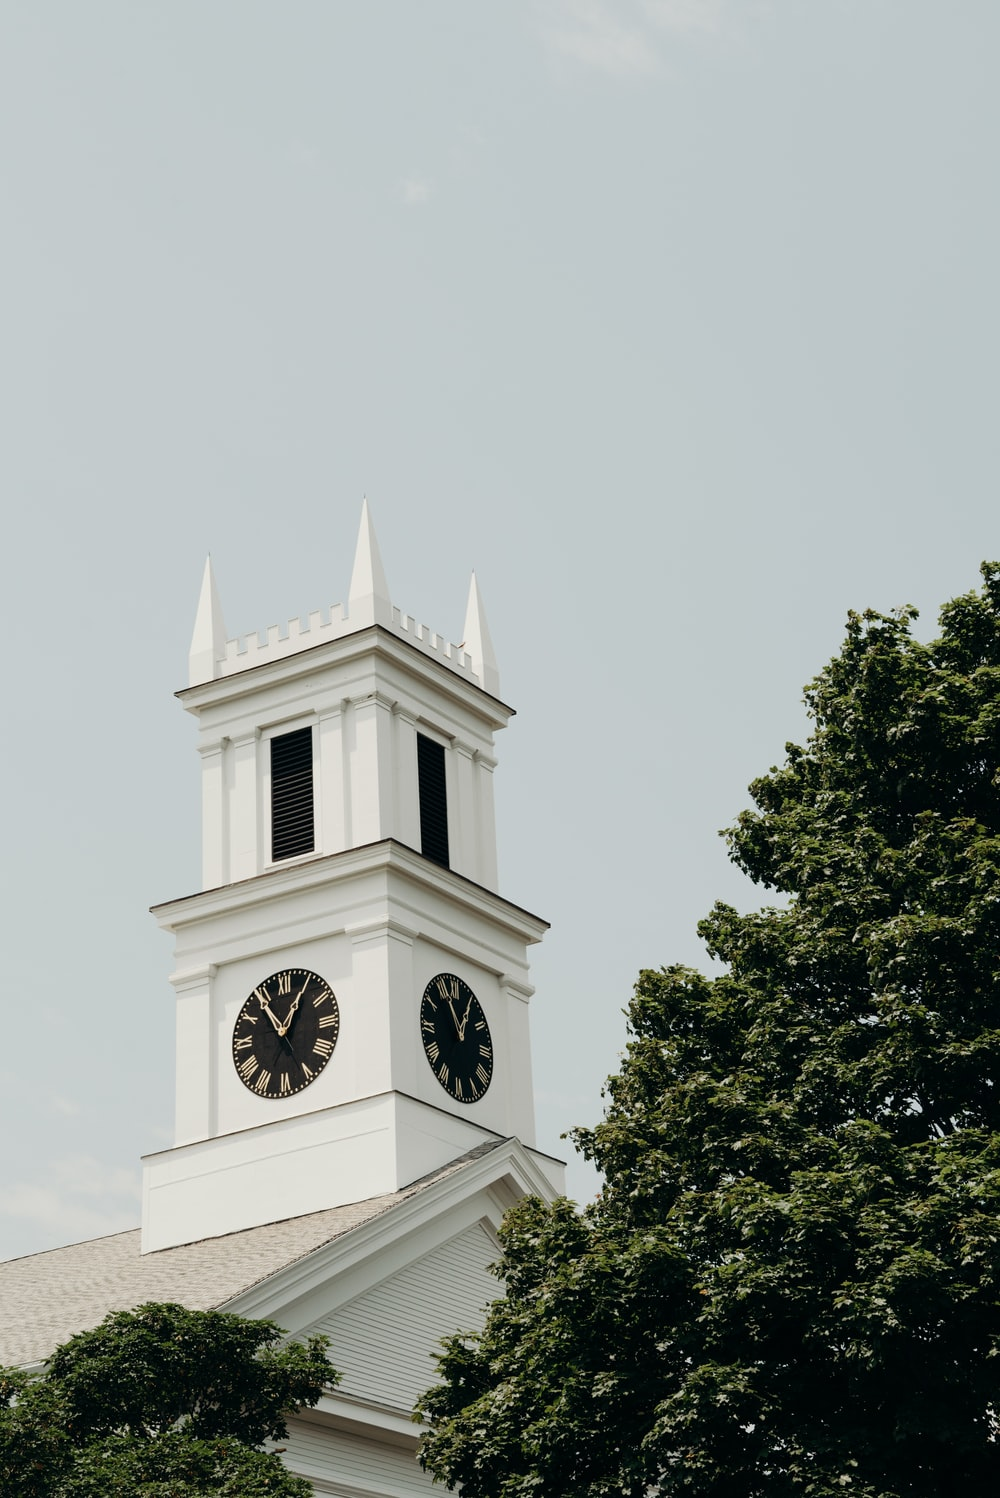 white clock tower showing 11:05